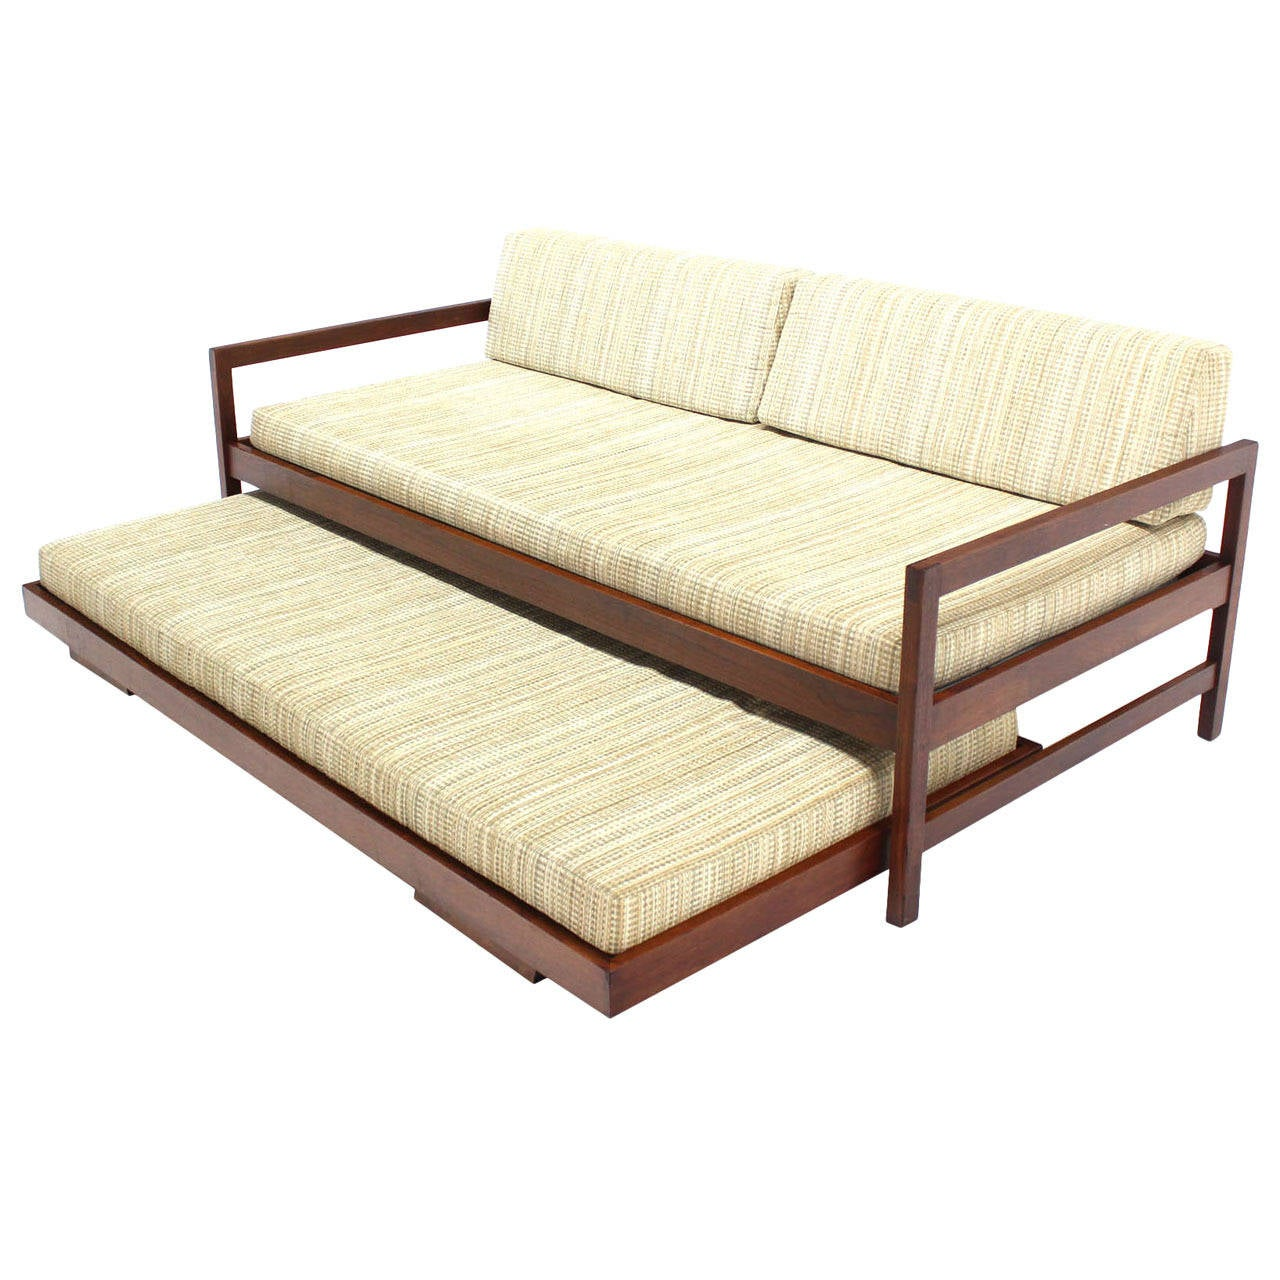 Mid century modern daybed sofa mid century modern daybed sofa modern - Solid Walnut Frame Mid Century Modern Trundle Pull Out Daybed